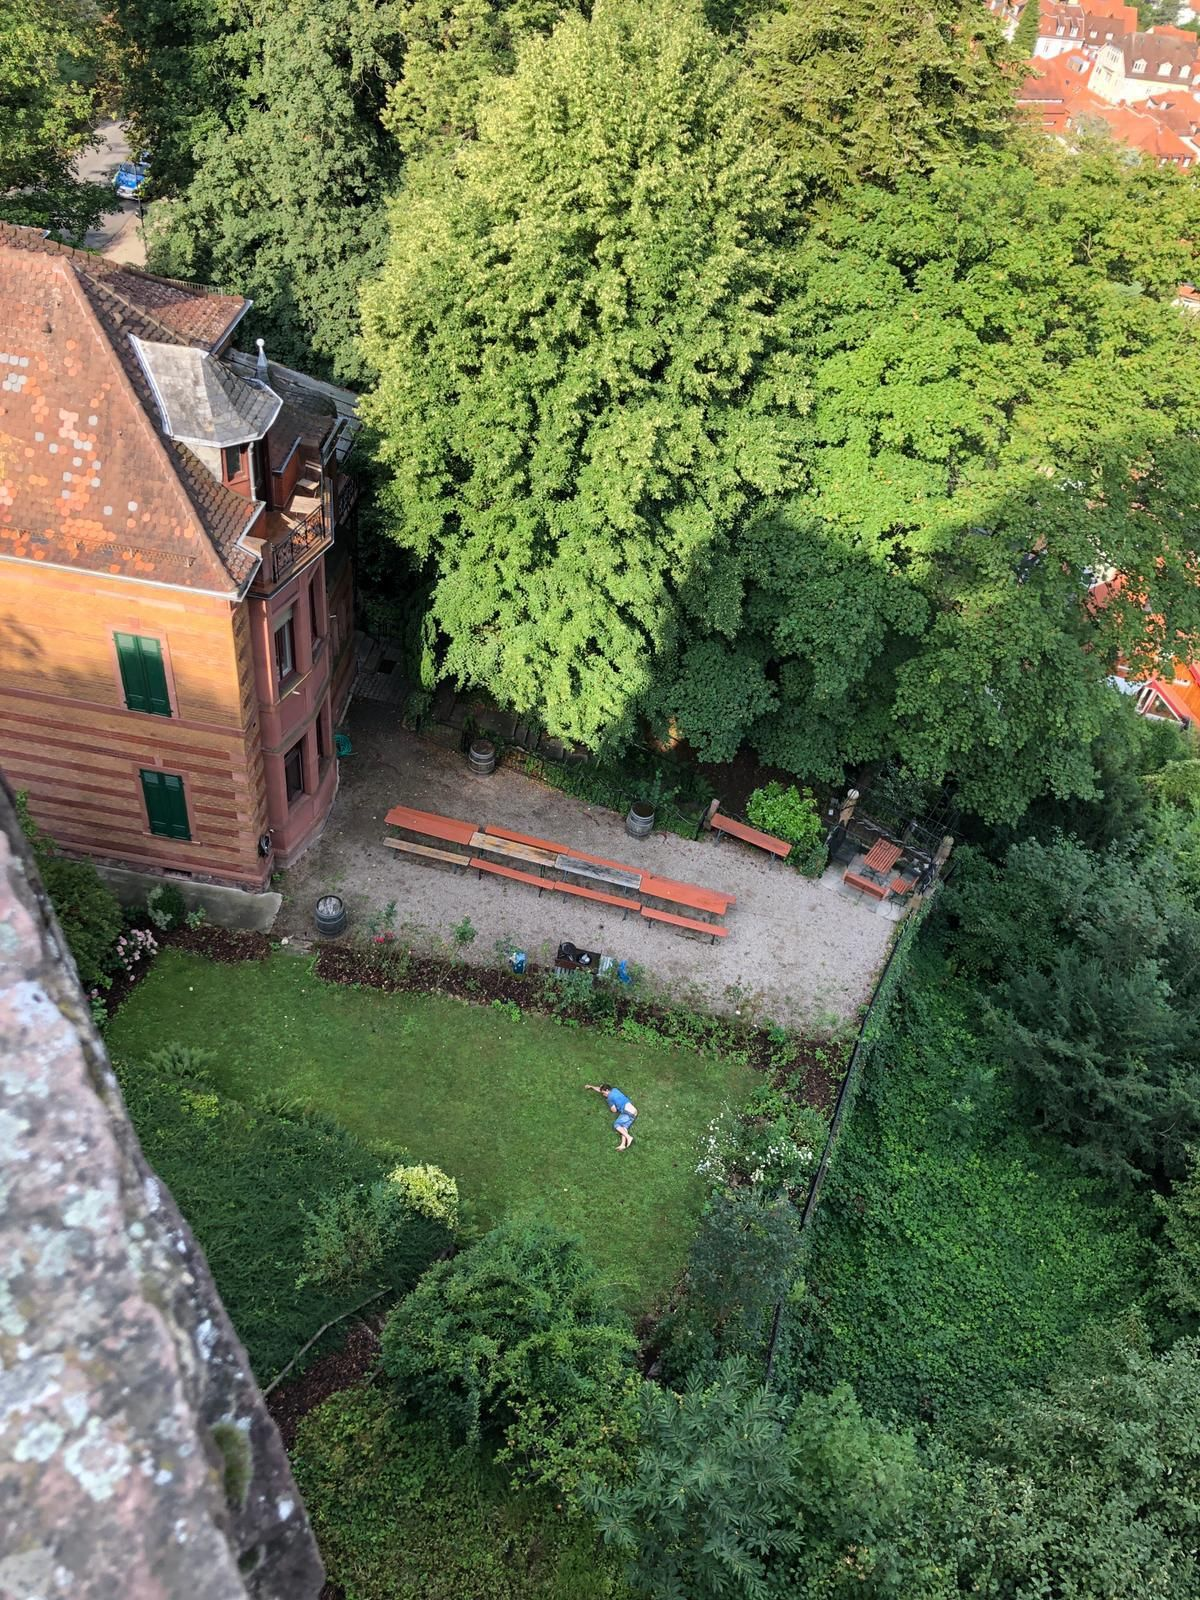 My parents are in Heidelberg, Germany visiting a castle which is next to a fraternity house. They just sent me this pic.